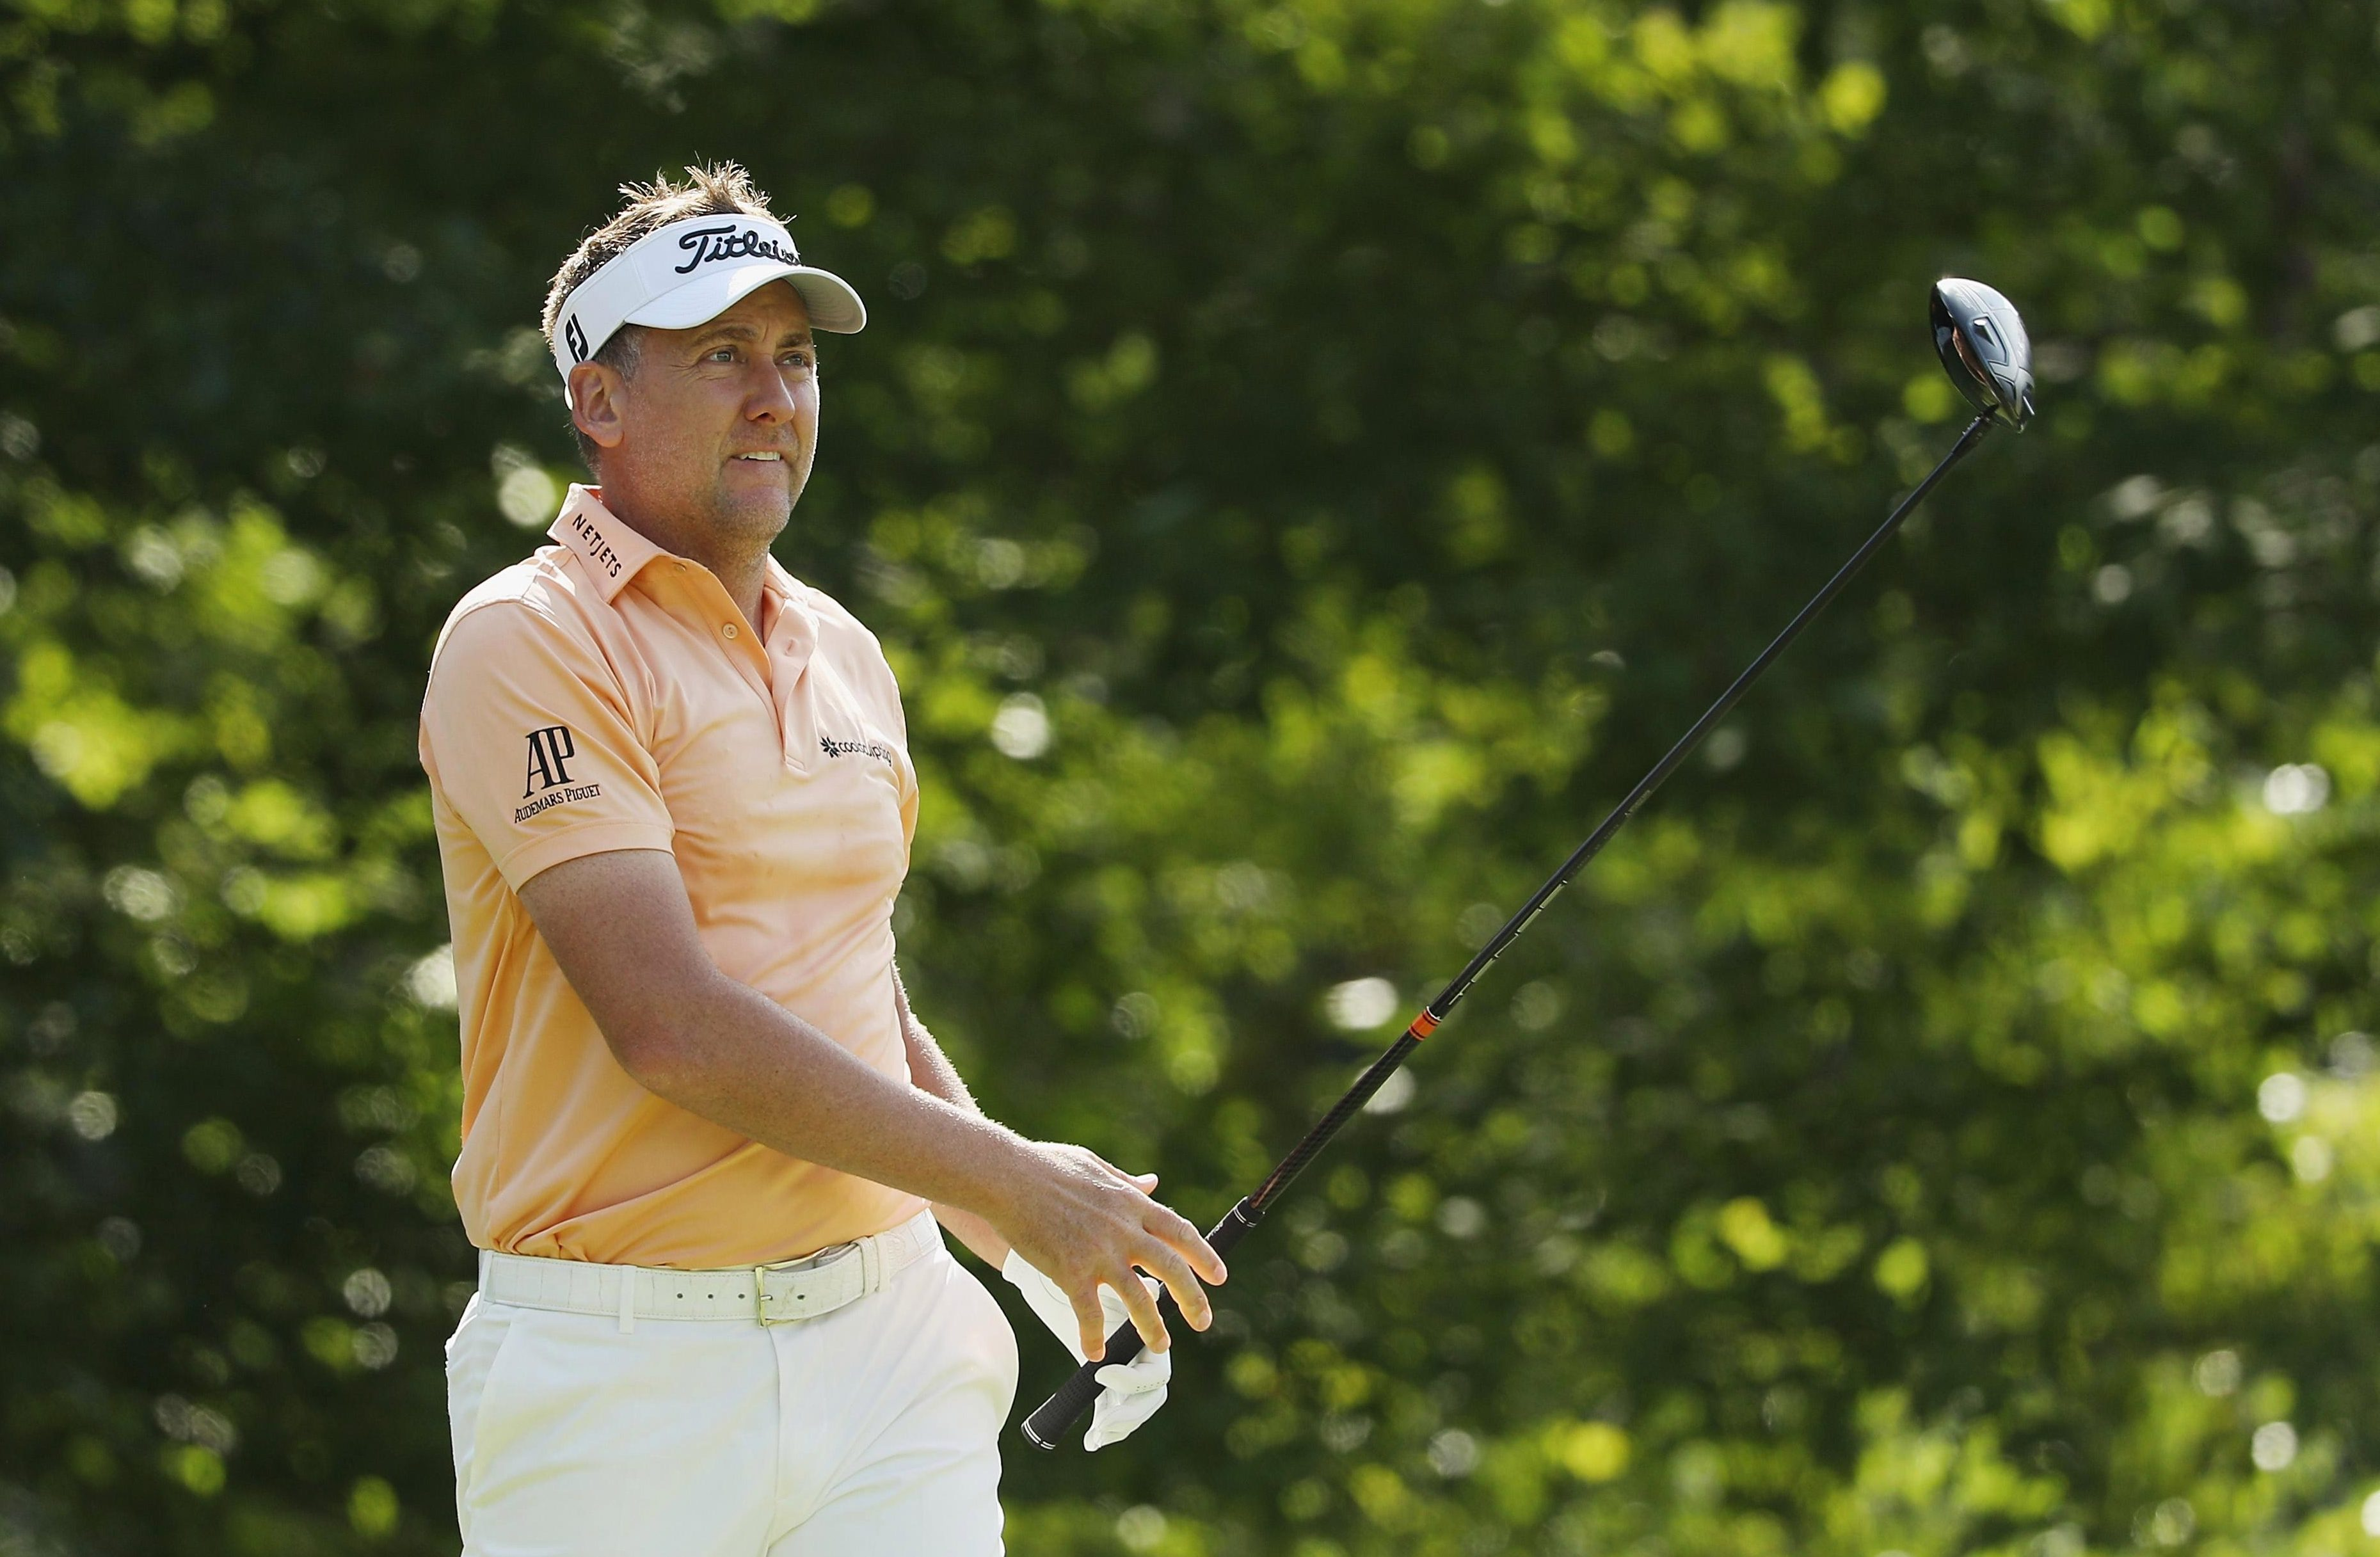 Ian Poulter is once again involved in the Ryder Cup after being picked as a wildcard by Thomas Bjorn